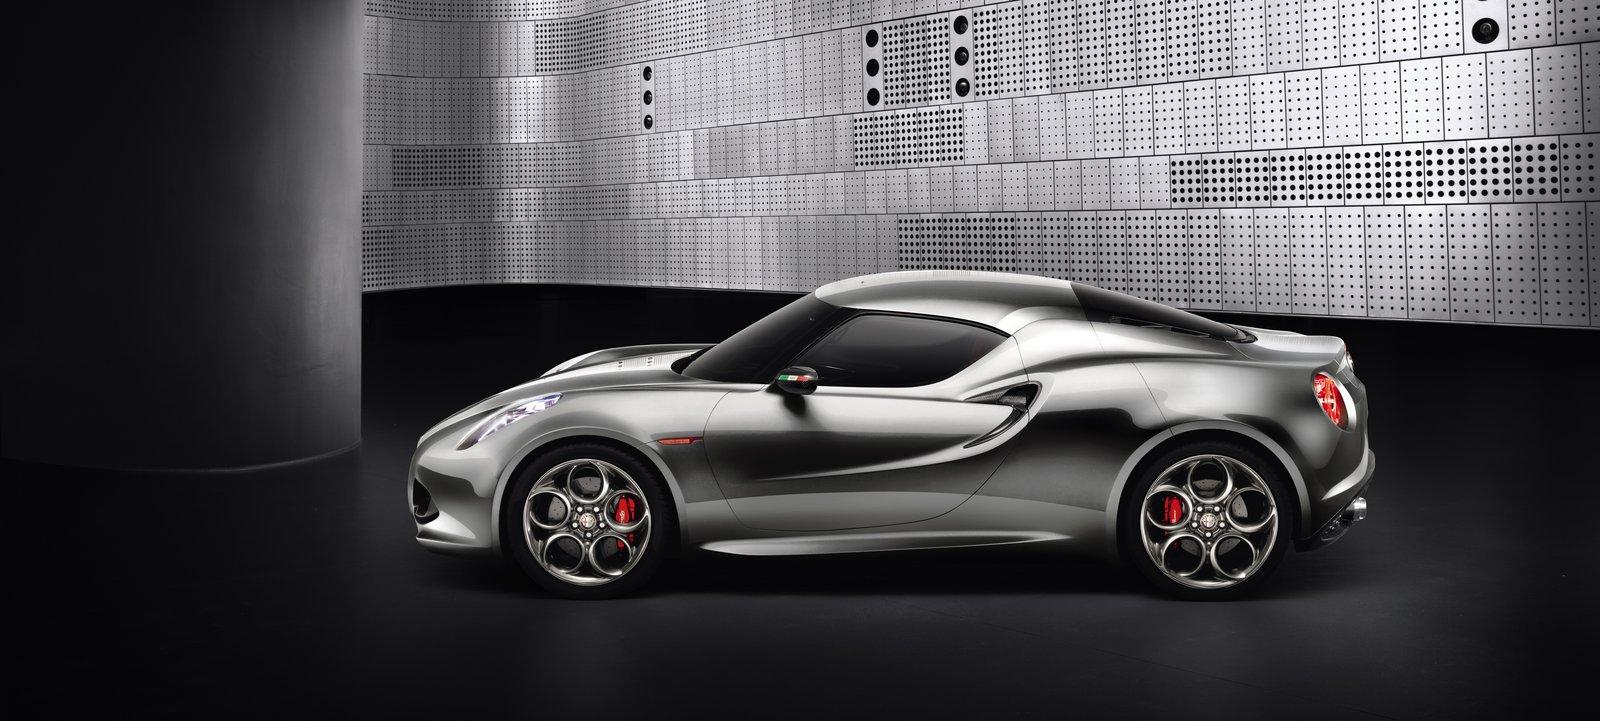 2011 Alfa Romeo 4C Concept 1 2011 ALFA ROMEO SPORTS THE METALLIC LOOK